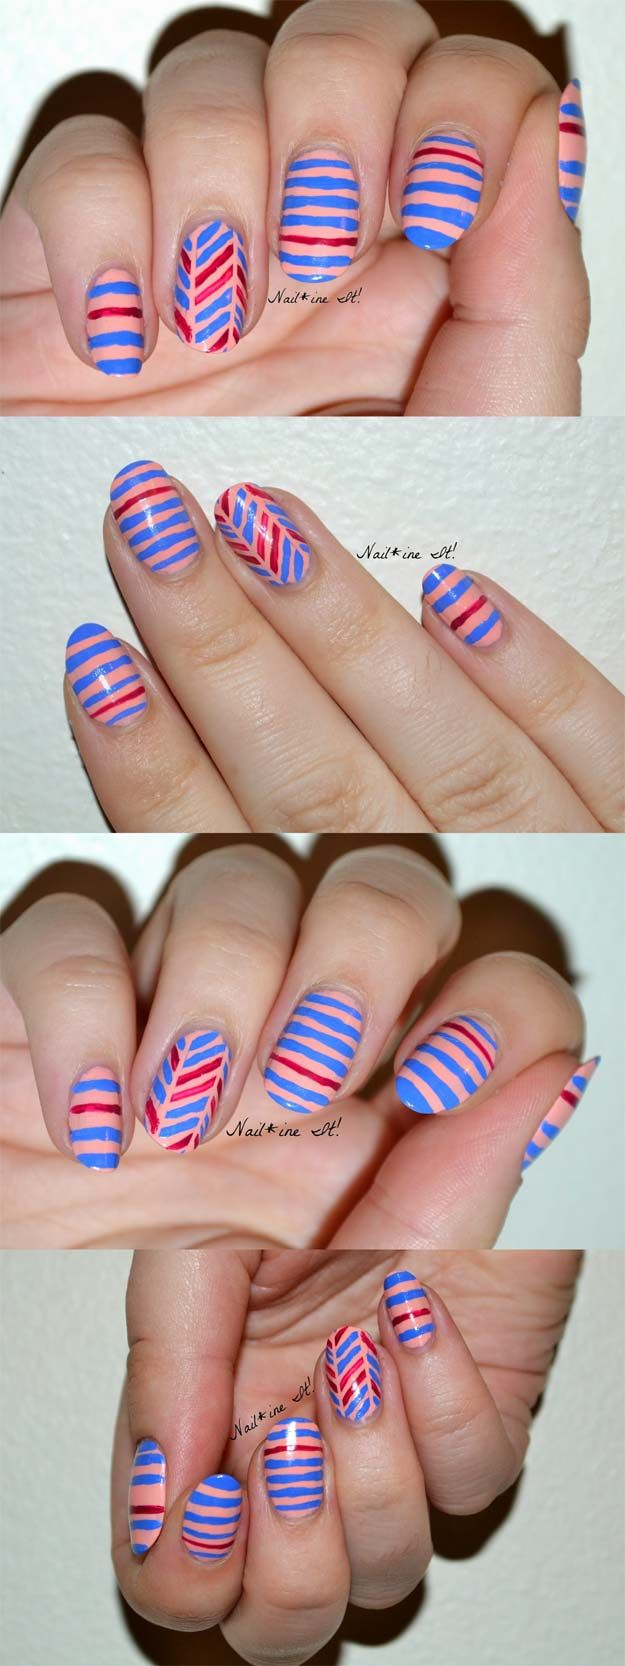 36 Striped Nail Art Ideas | Nail art stripes, Nail tape and Scotch tape